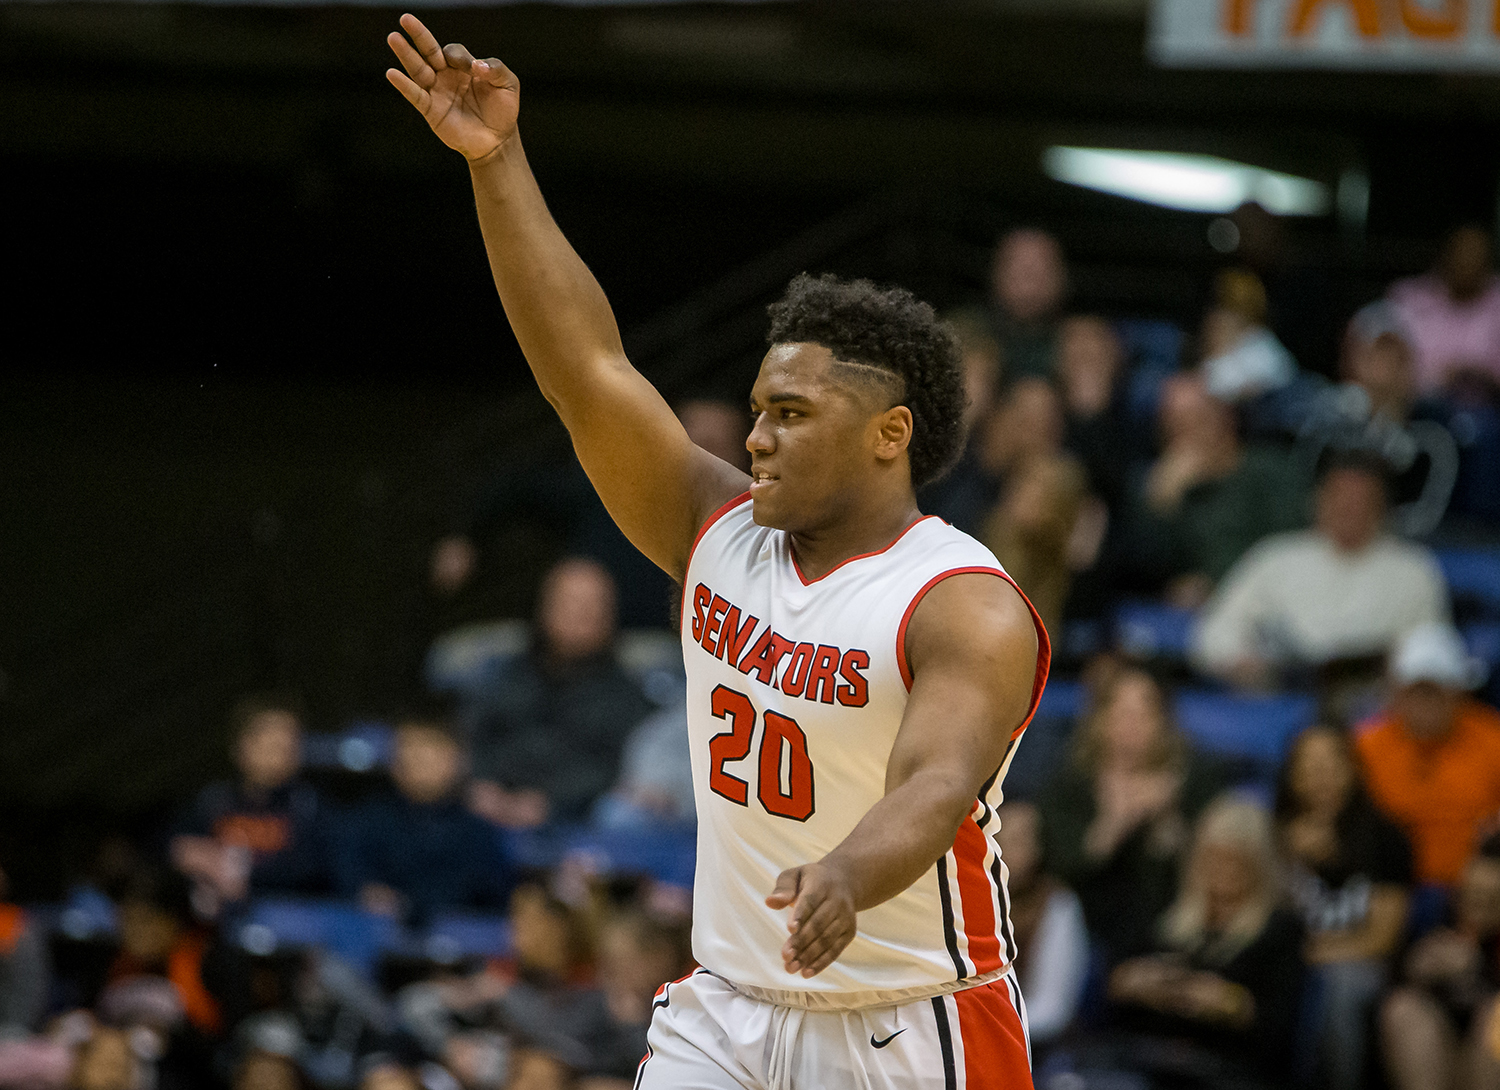 Springfield's Caleb Small (20) reacts after draining a 3-pointer against Sacred Heart-Griffin in the second quarter on opening night of the Boys City Tournament at the Bank of Springfield Center, Wednesday, Jan. 16, 2019, in Springfield, Ill. [Justin L. Fowler/The State Journal-Register]